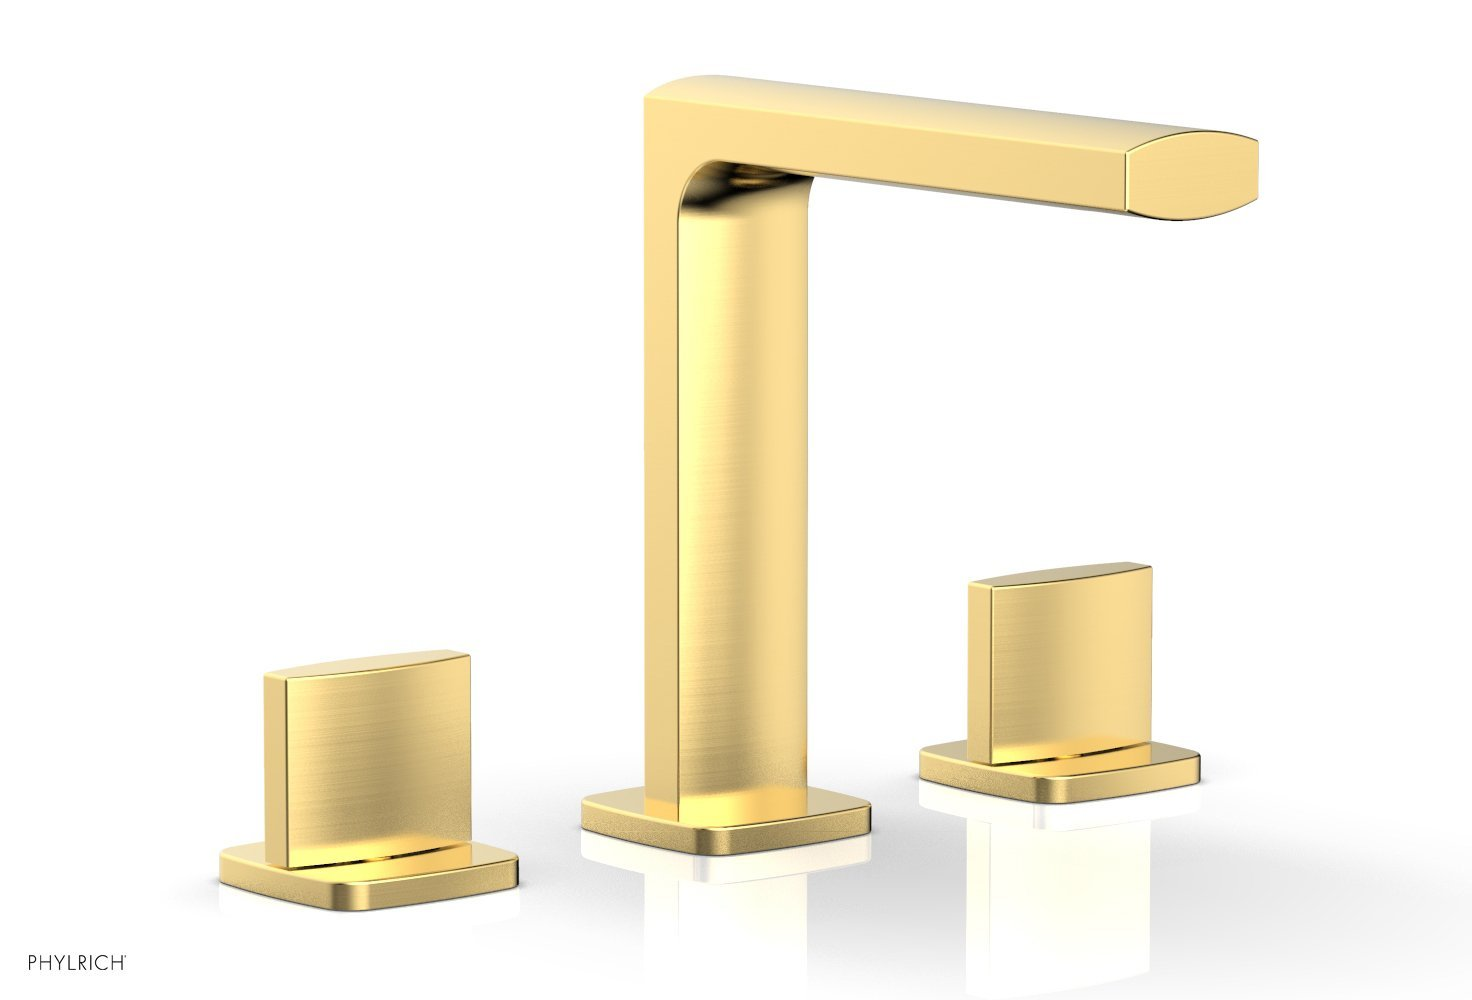 Phylrich 181-01-024 RADI Widespread Faucet - Blade Handle High Spout - Satin Gold